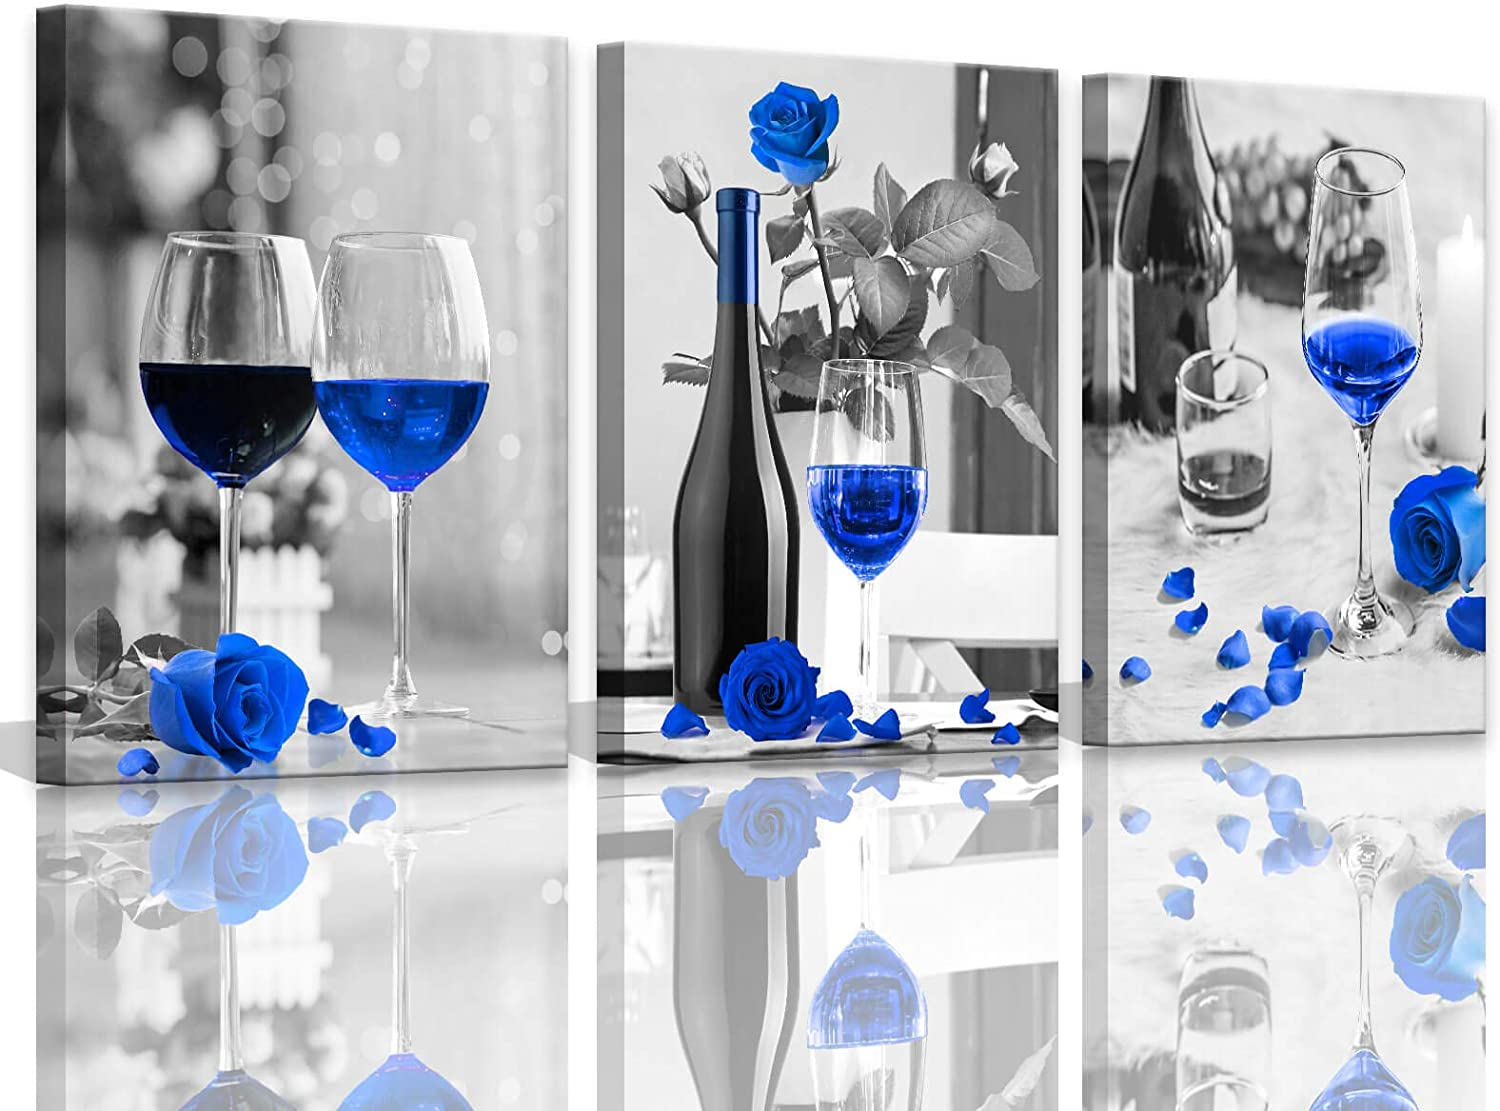 Kitchen Pictures Wall Decor Blue Artwork For Home Walls Decorations Black And White Bottle Red Rose Wine Glass 3 Pieces Canvas